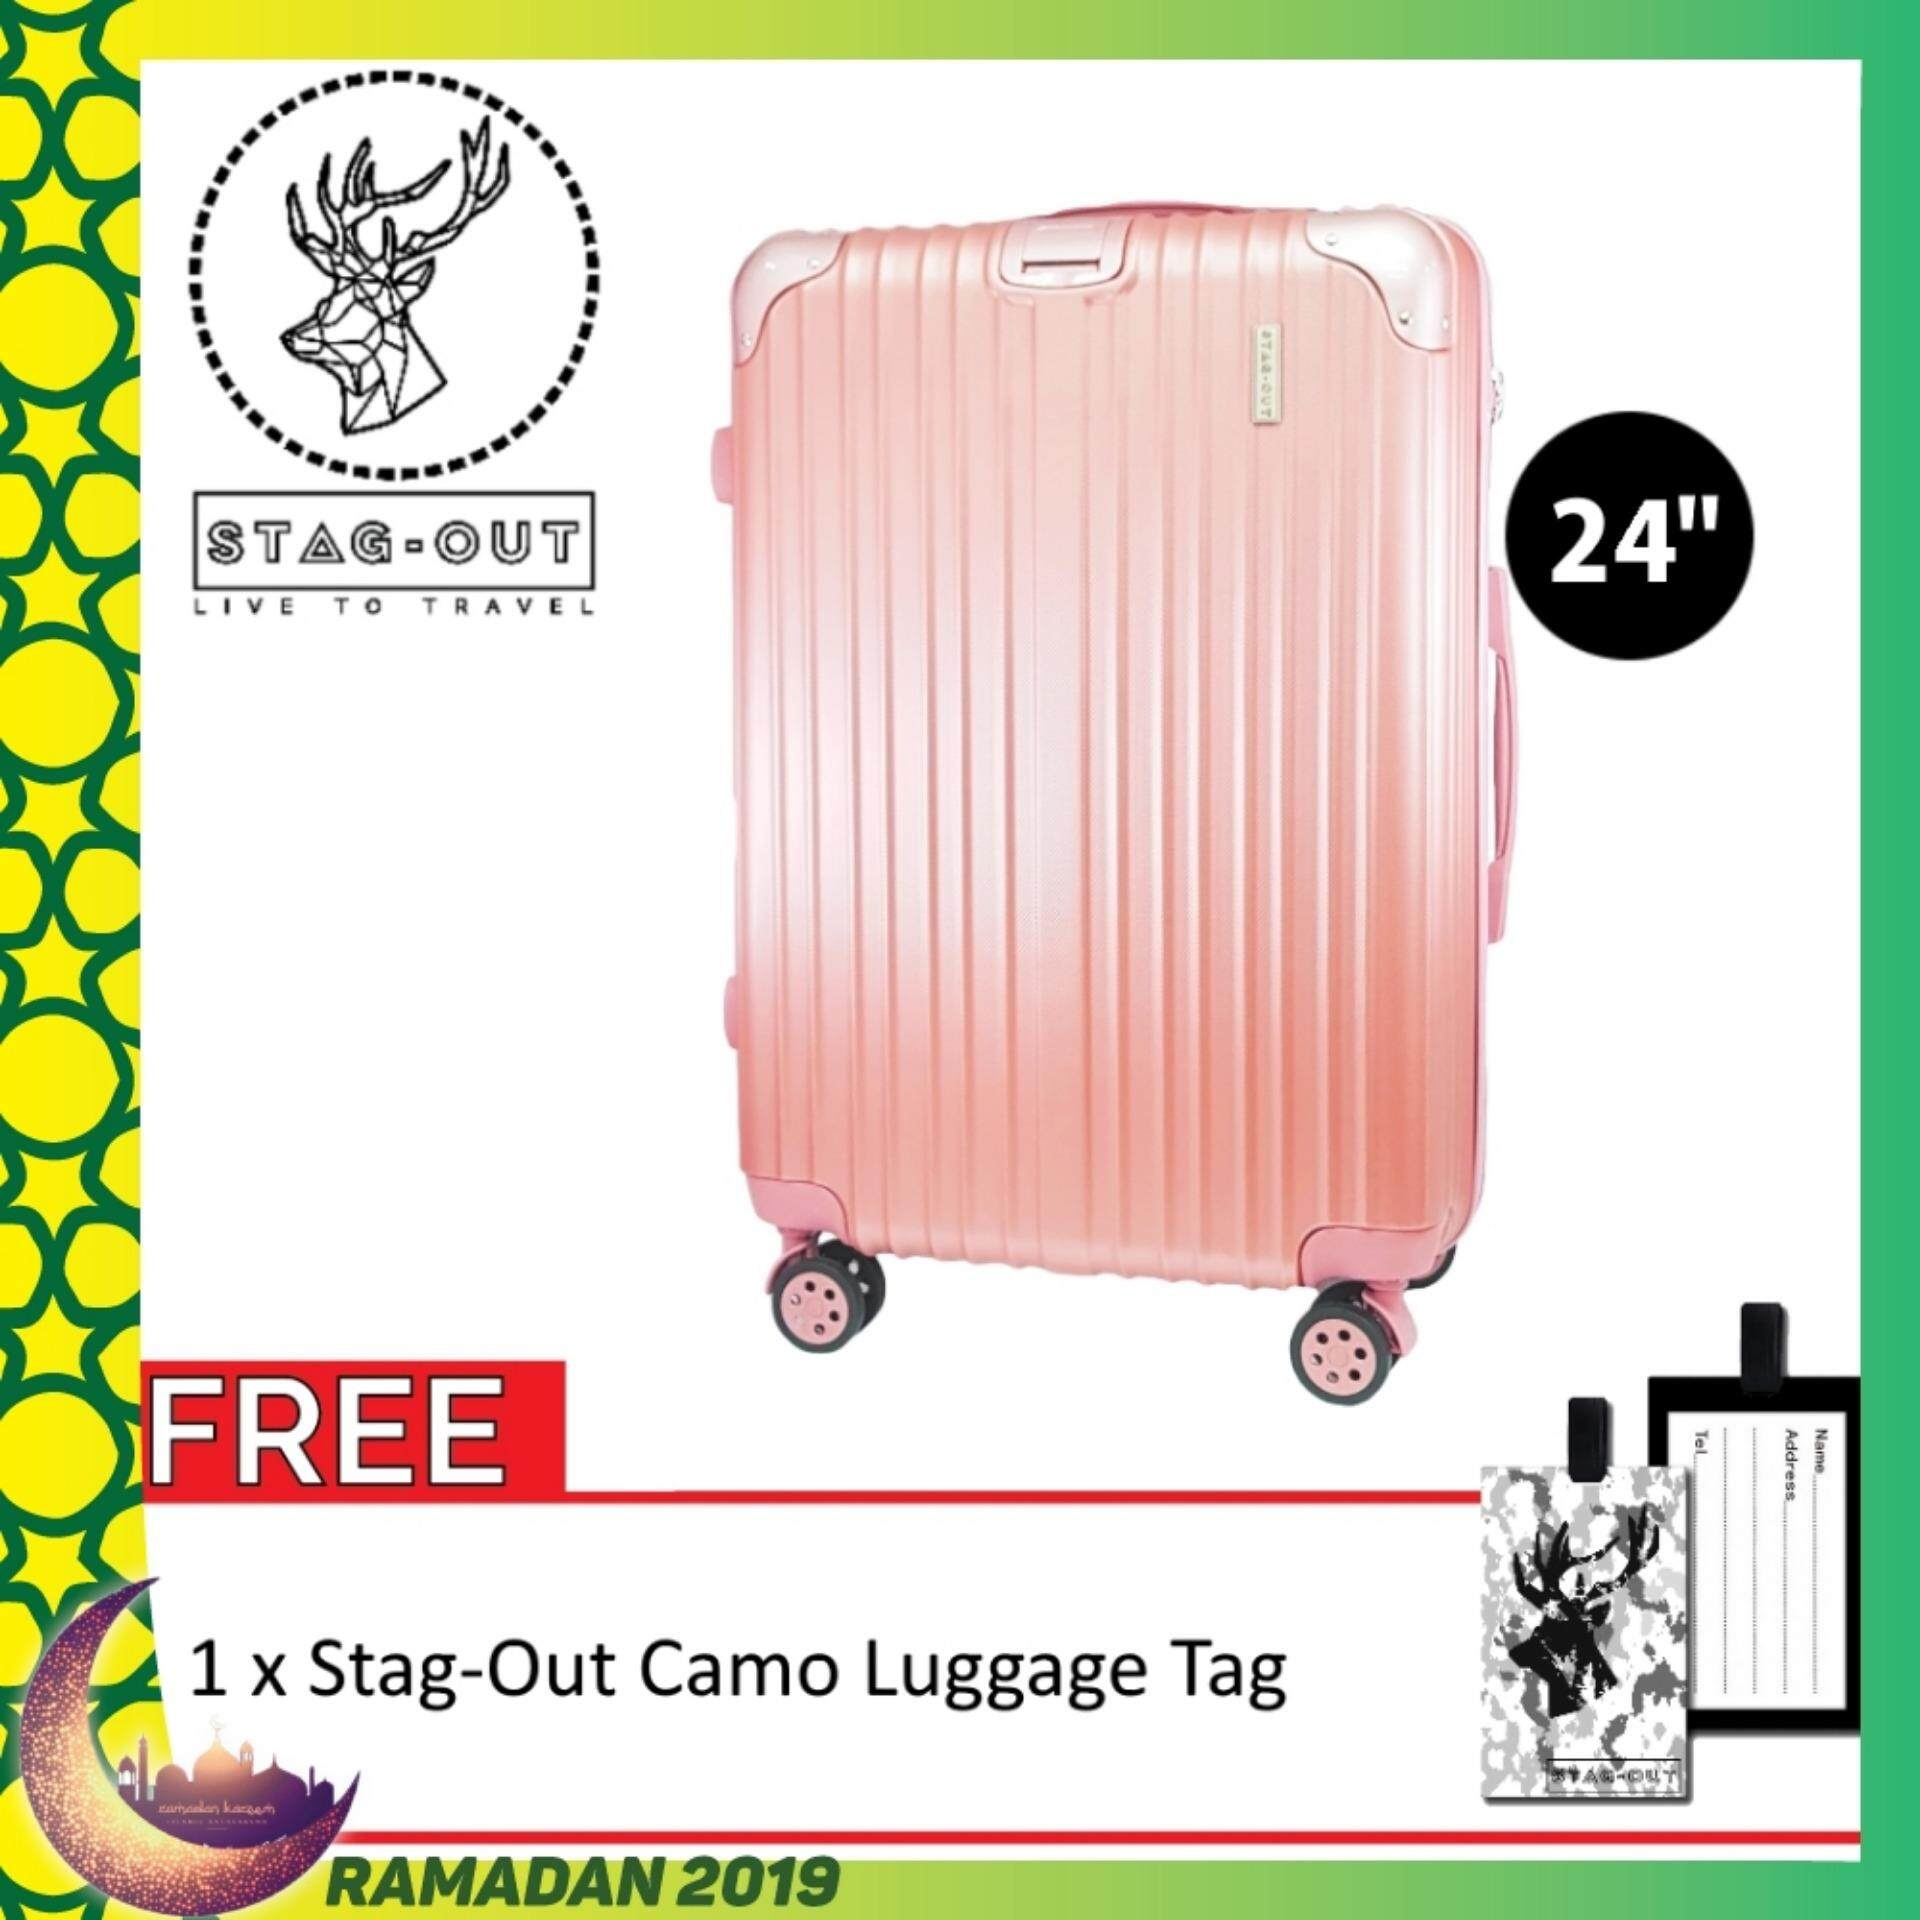 [stag-Out] Amirates Premium 24 Protector Abs Hardcase Travel Check-In Luggage Bag Suitcase (rose Gold) Raya 2019 By Kingsman Online Store.